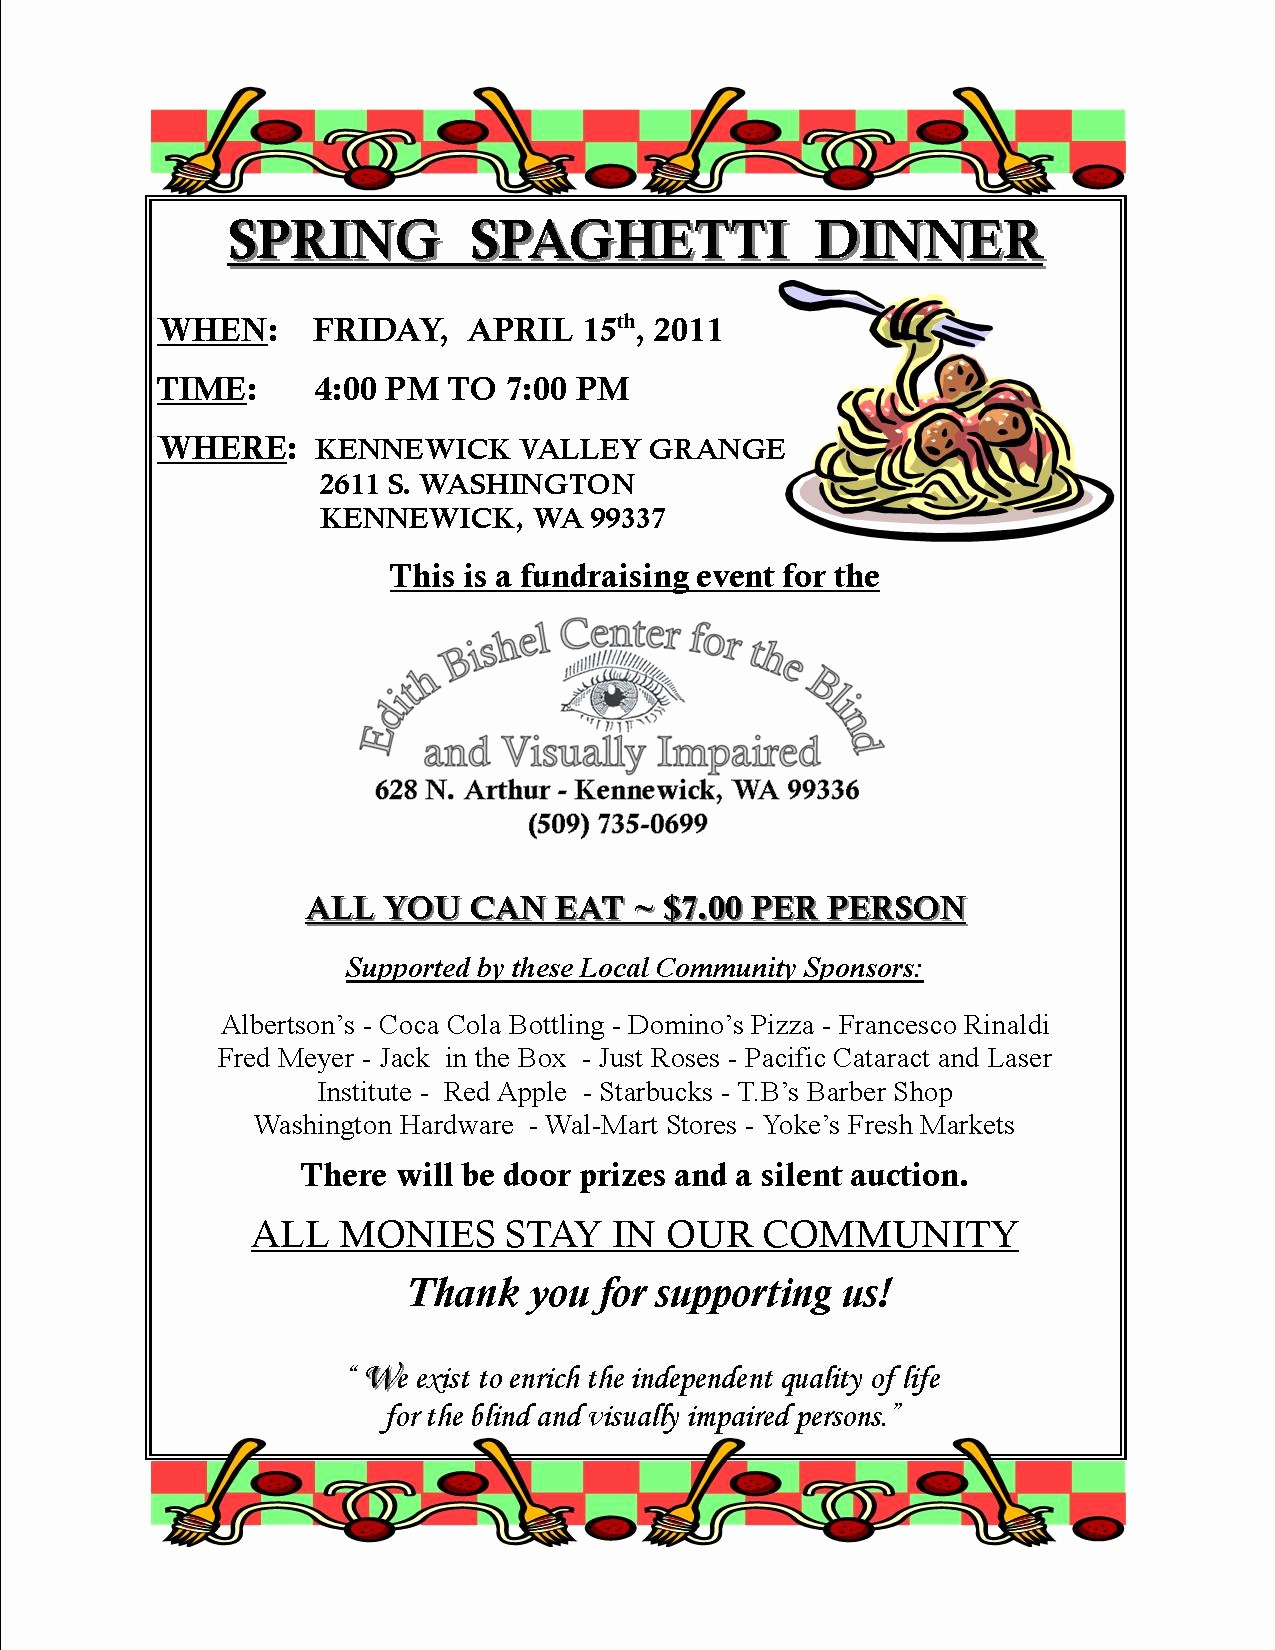 Flyers for Fundraisers Template Free Inspirational Spaghetti Dinner Flyer Template Yourweek 198bddeca25e